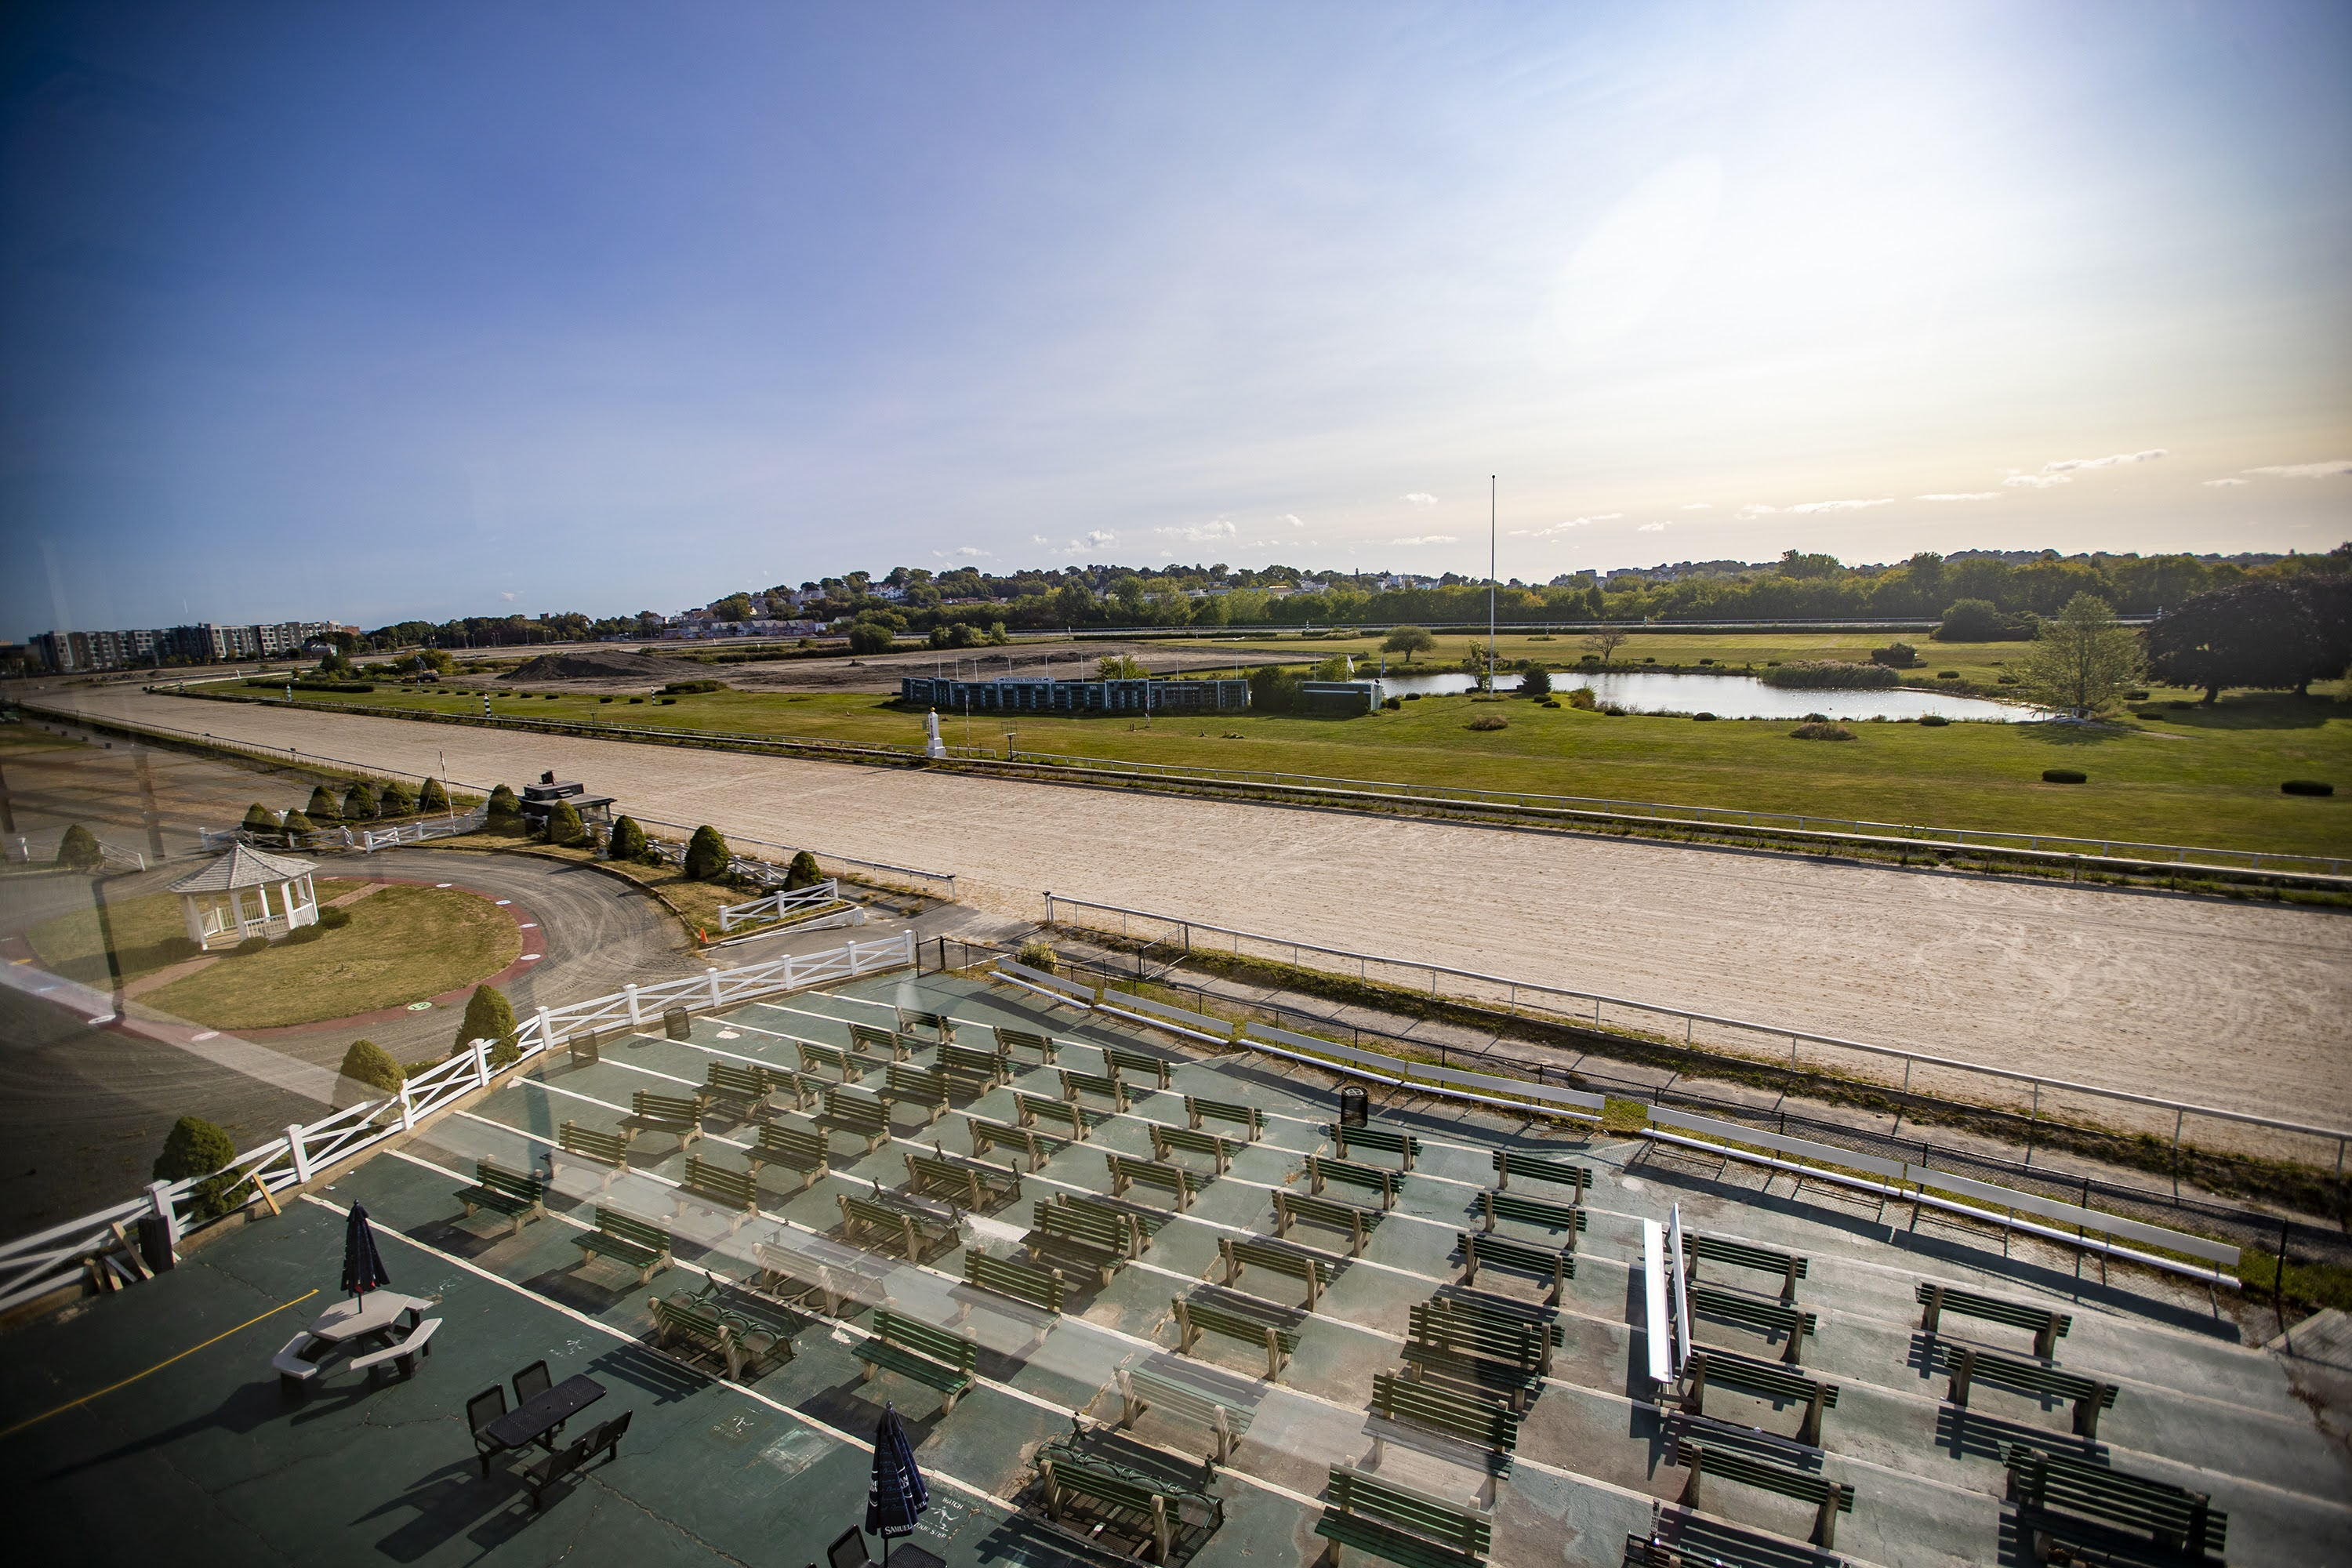 The Suffolk Downs race track in East Boston is set to be redeveloped into a new neighborhood by HYM  Investment Group. (Jesse Costa/WBUR)